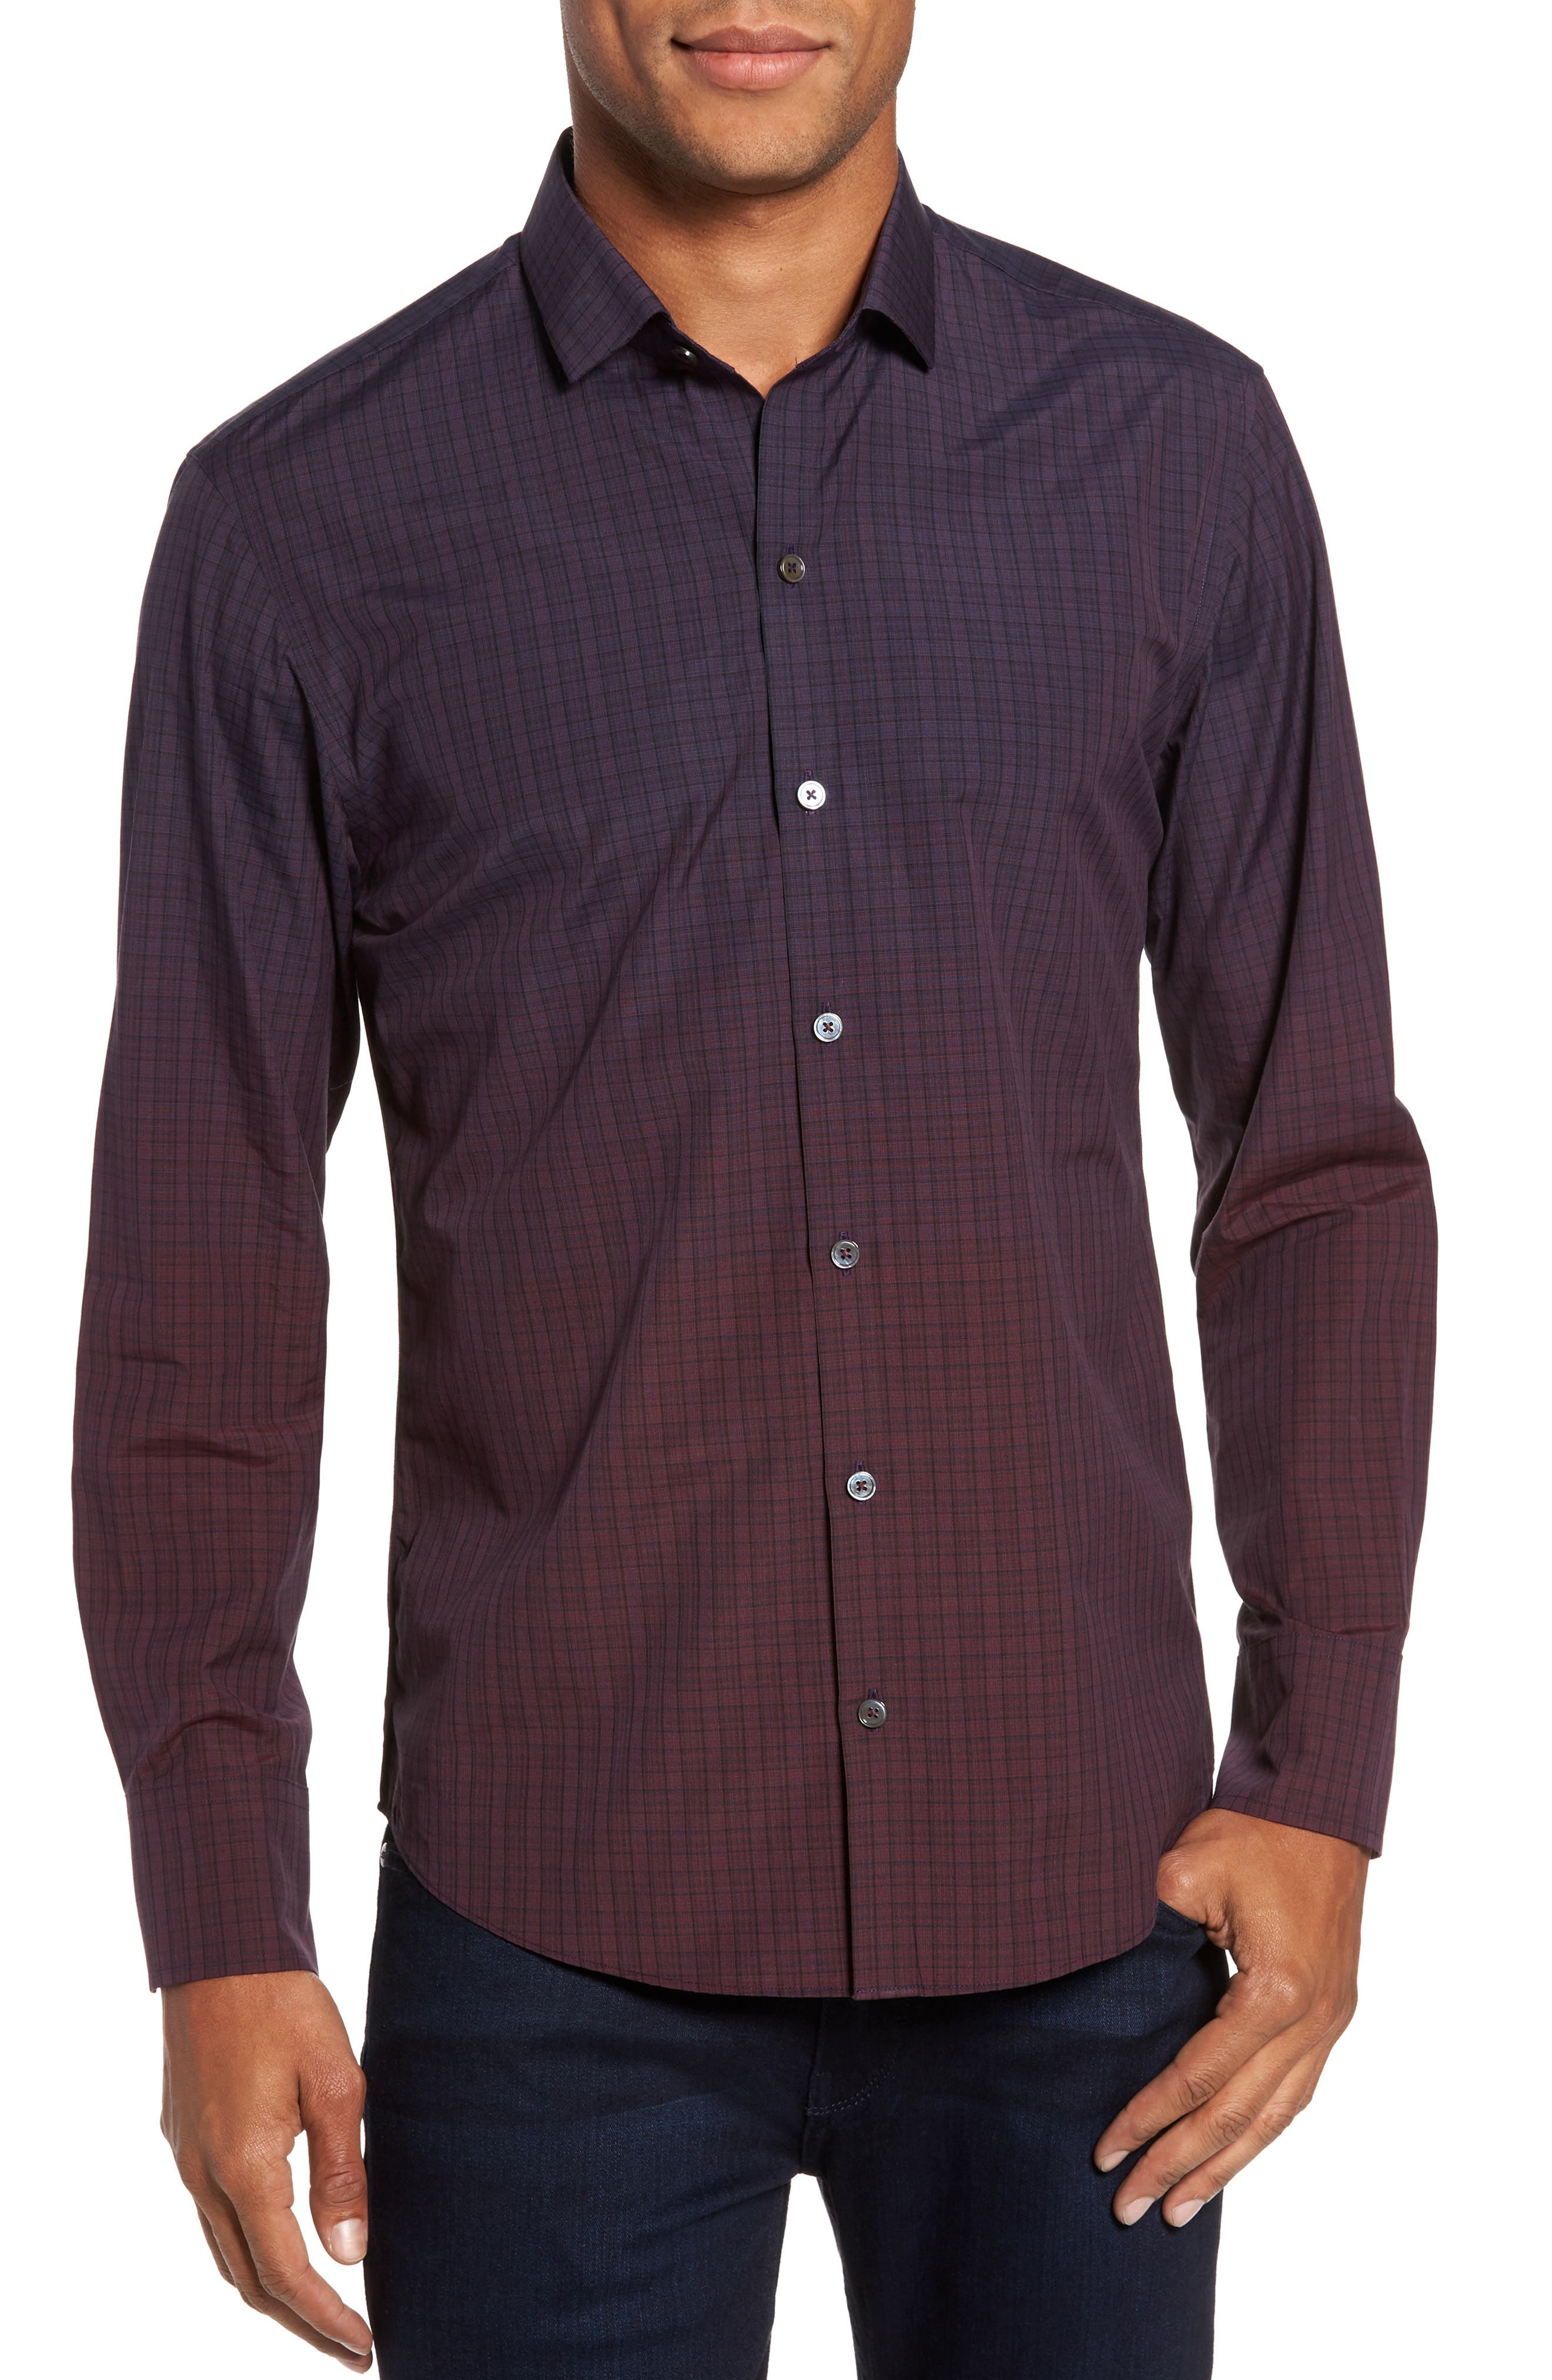 Alternate Image 1 Selected - Zachary Prell Wein Slim Fit Check Sport Shirt